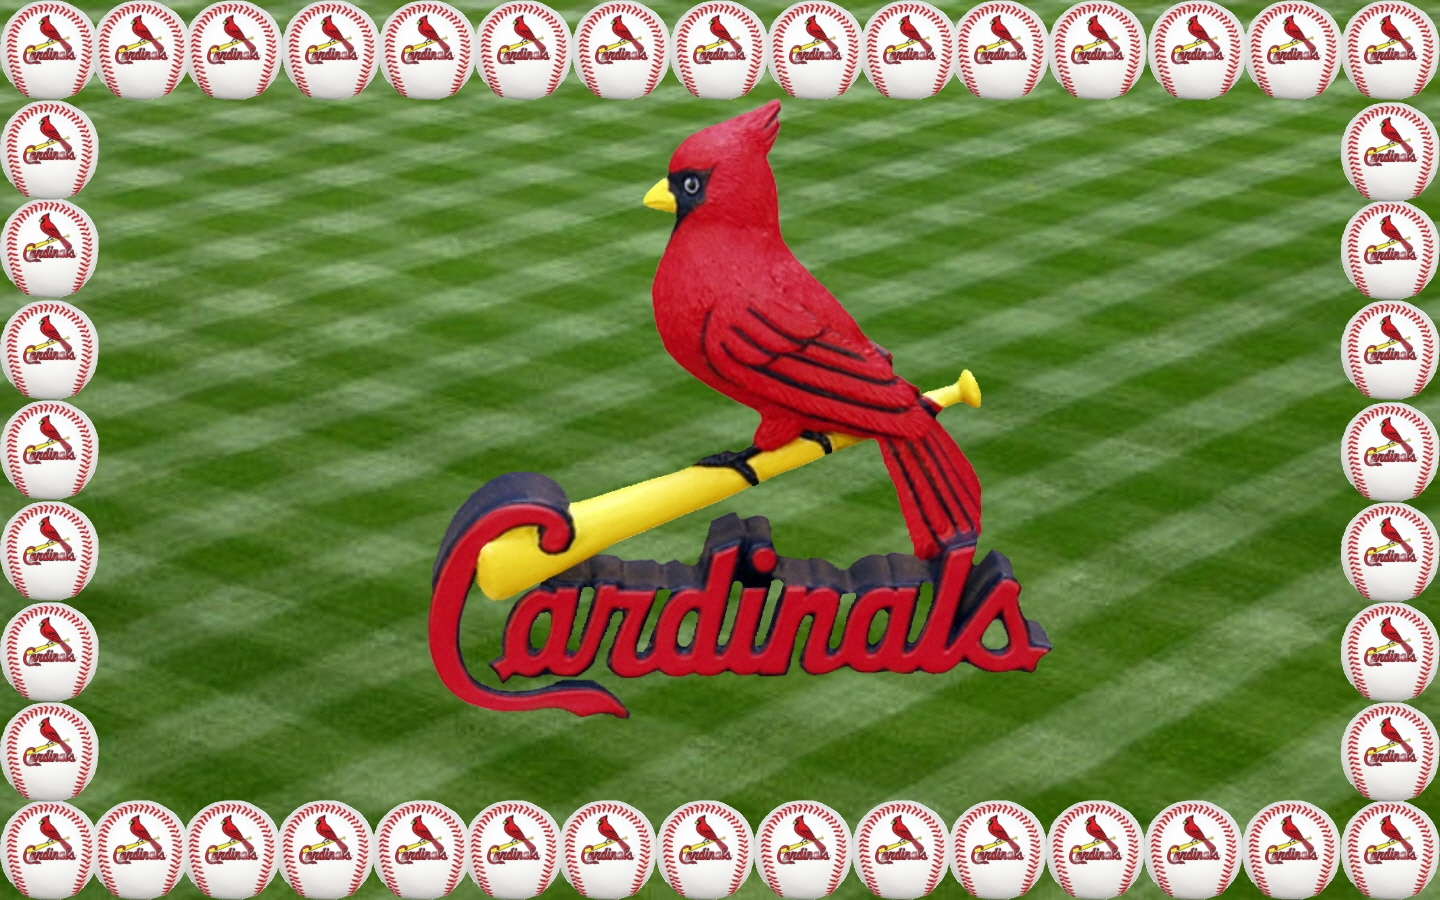 More St Louis Cardinals wallpapers St Louis Cardinals wallpapers 1440x900